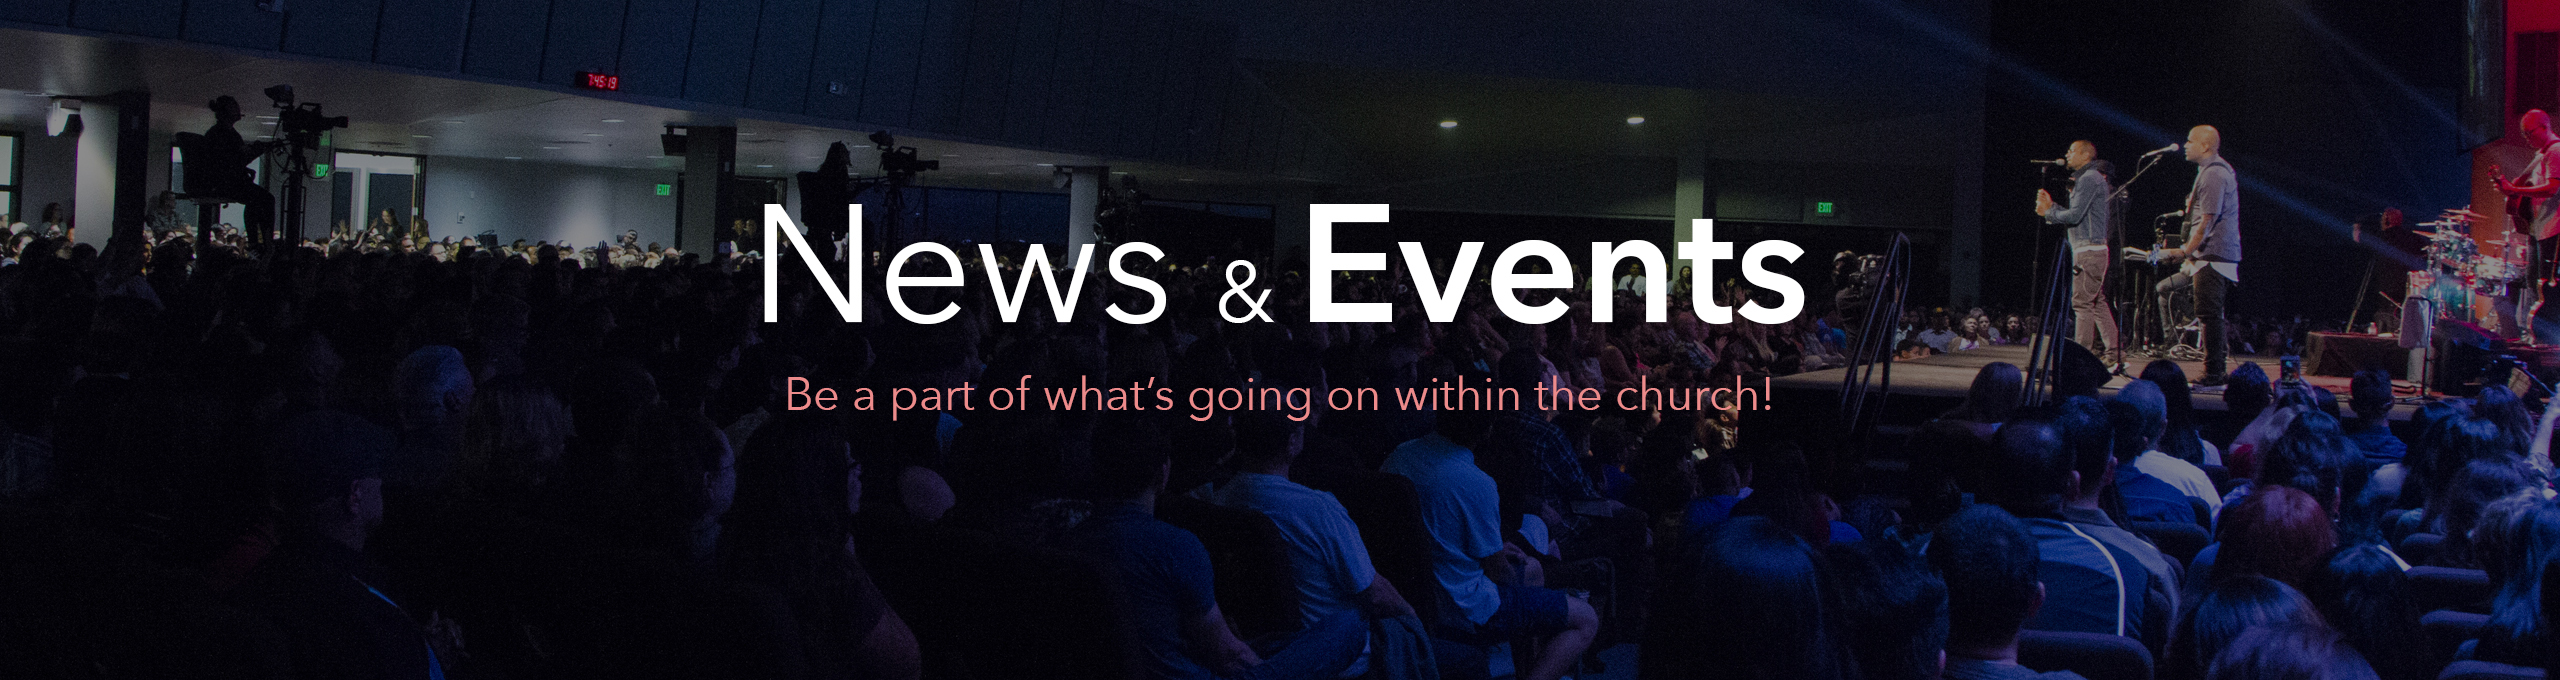 News&Events-WEB